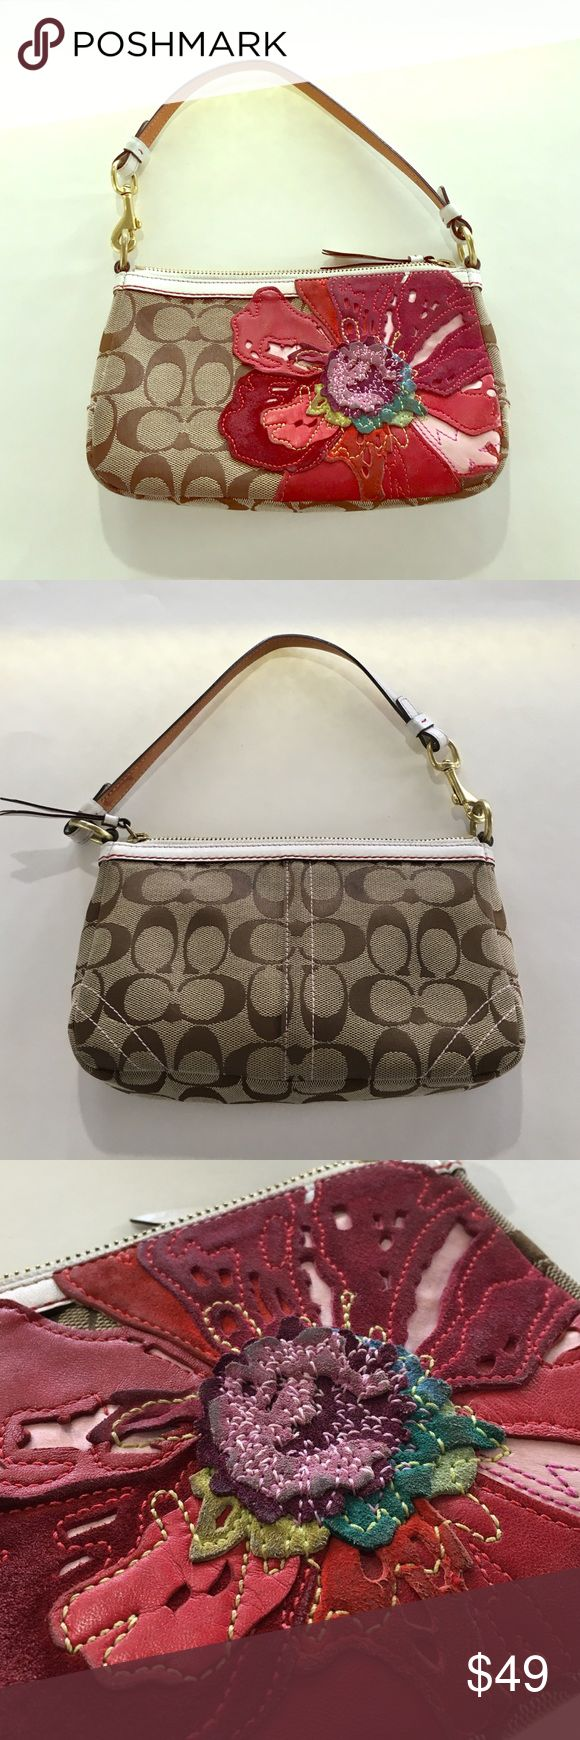 """Coach Poppy pochette signature fabric flower purse A darling Coach pochette with a poppy flower on the front. Signature tan fabric and white leather trim. Overall fair used condition showing signs of use and some dirty marks. 9"""" wide 5.5"""" tall 2"""" deep, 6"""" strap drop. Sorry no trades.  Coach Bags Mini Bags"""